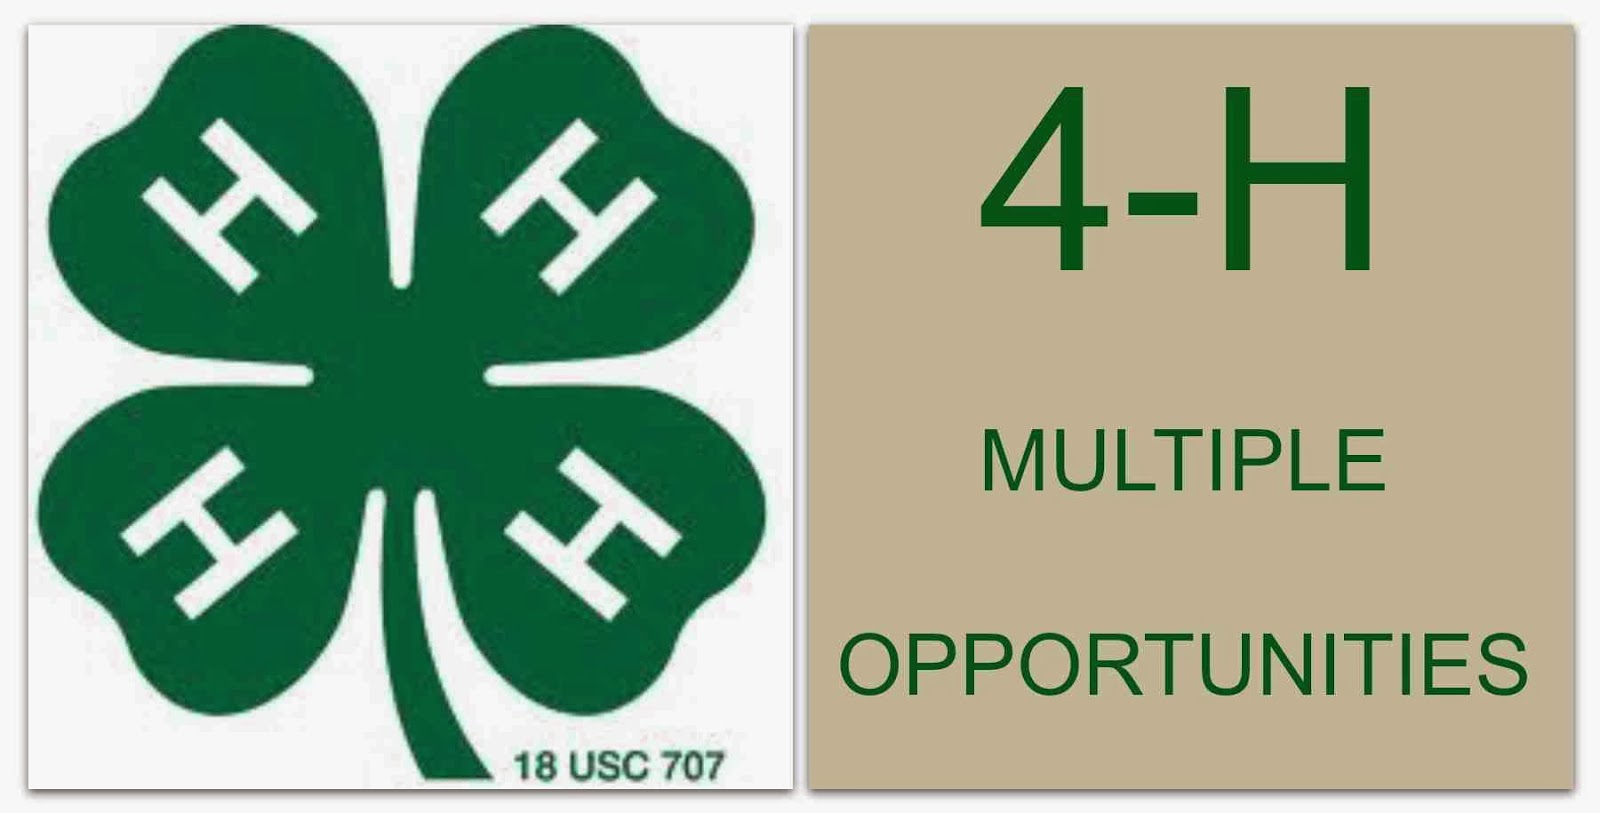 4H opportunities